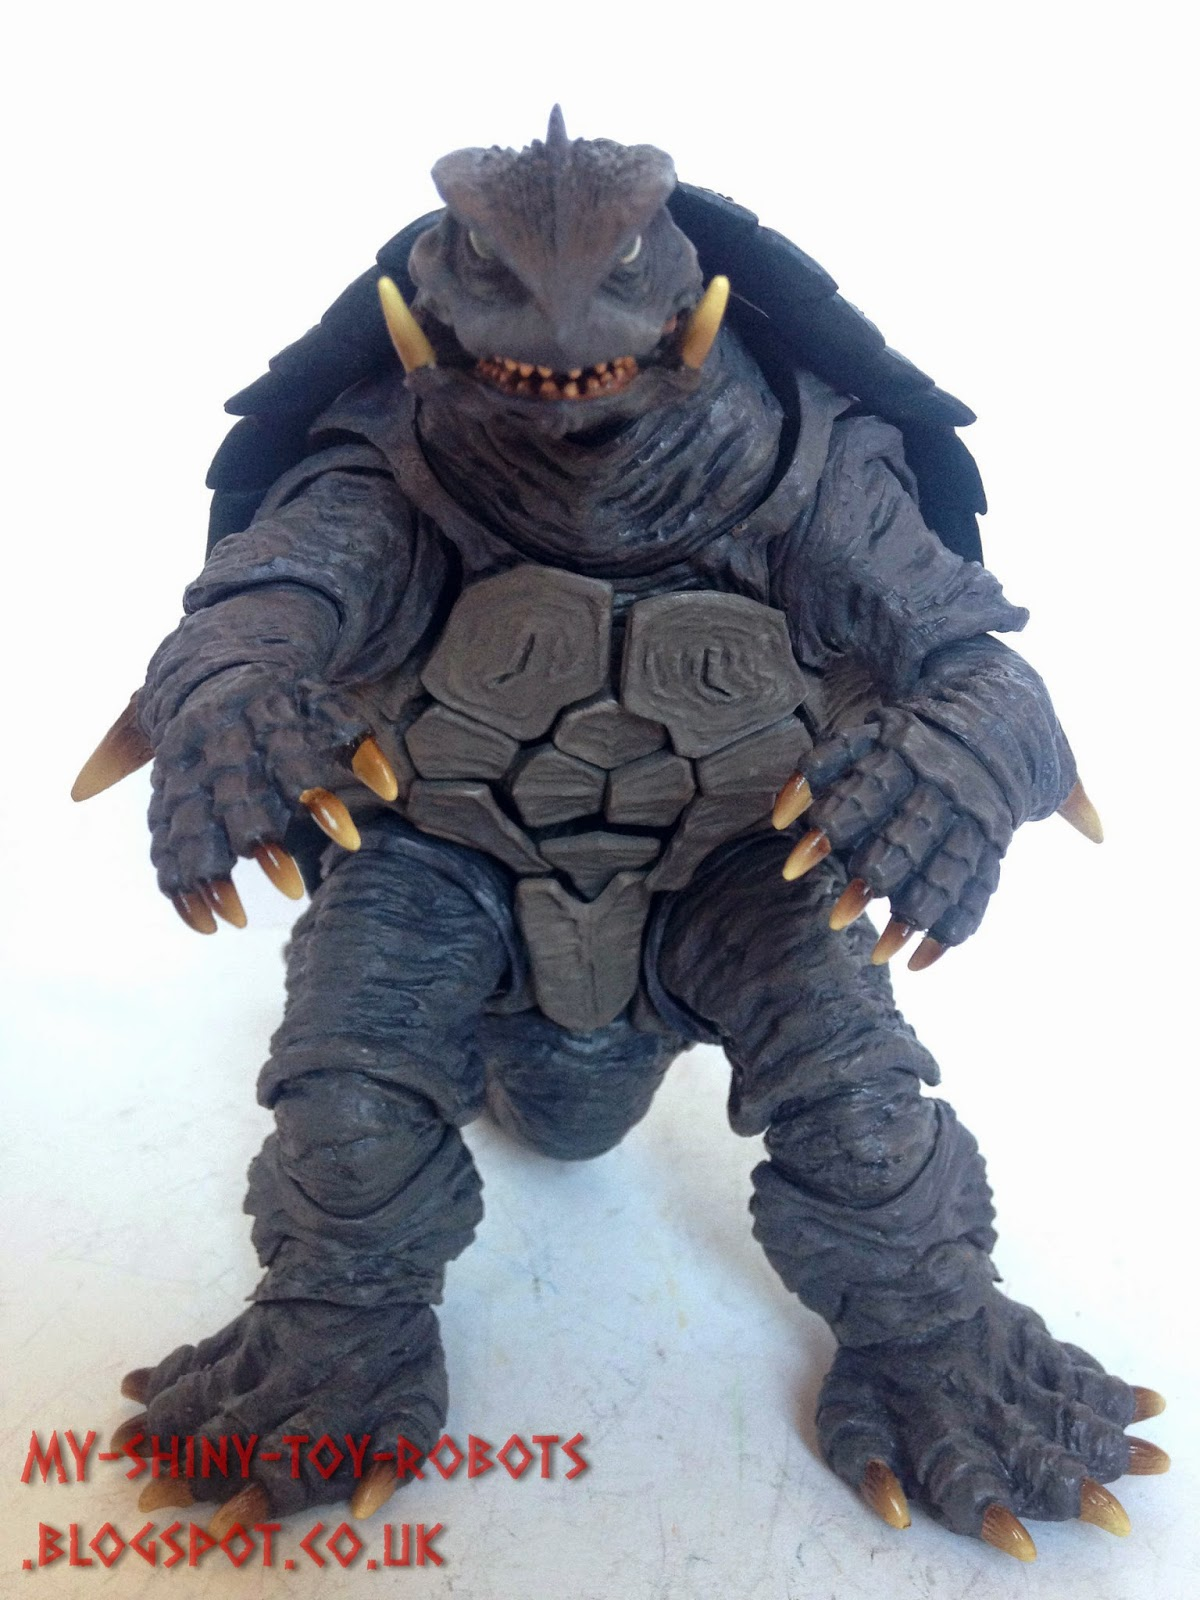 Gamera front view